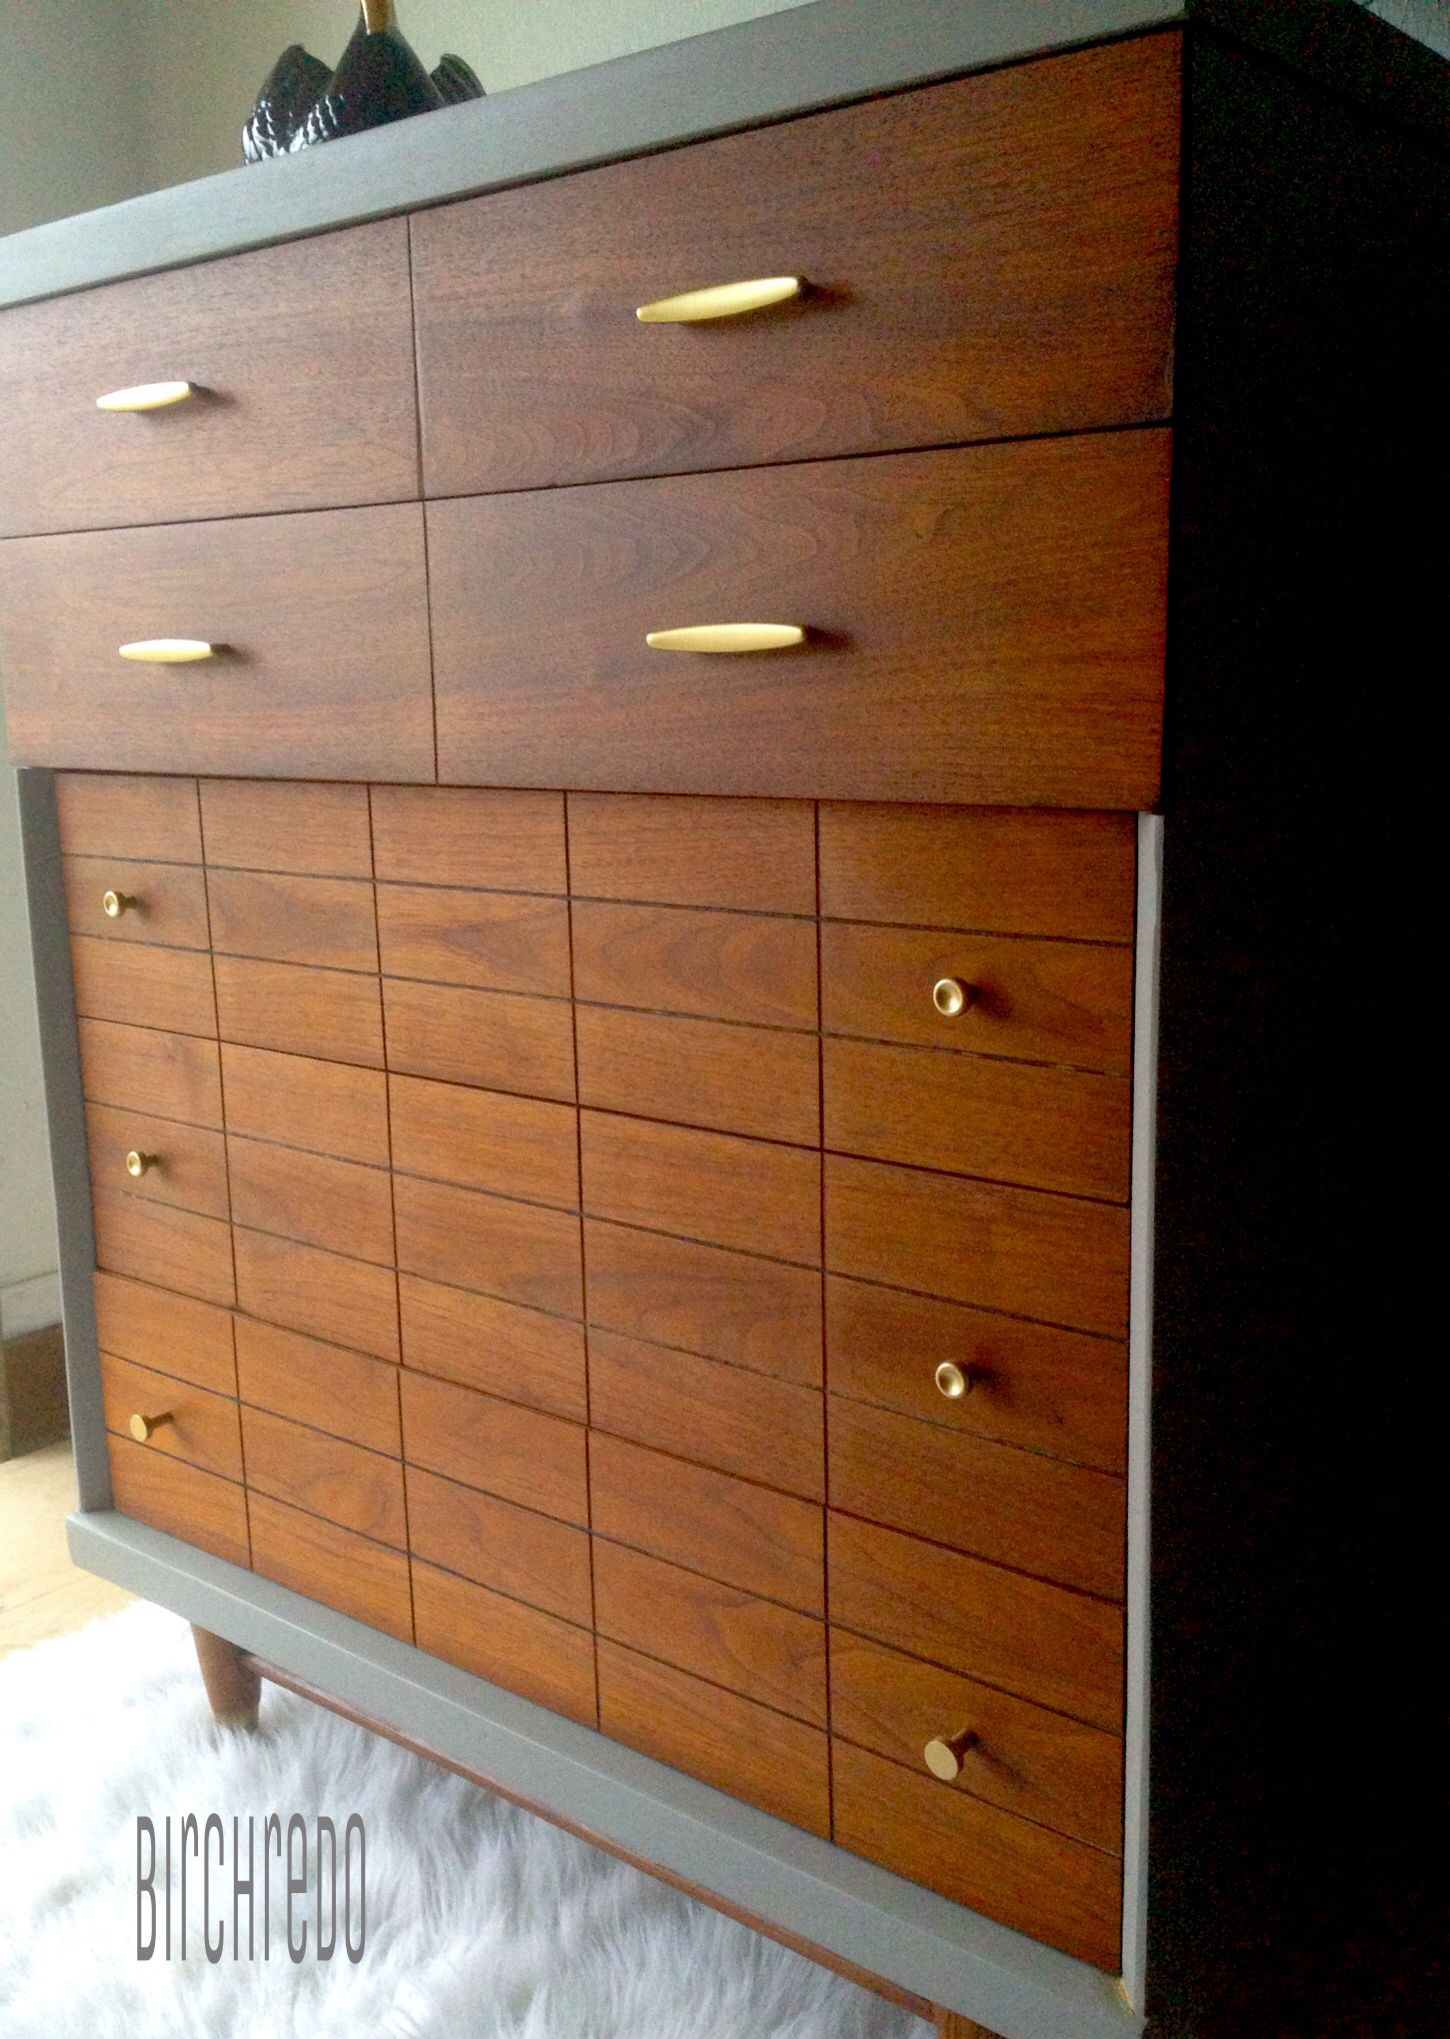 Mid Century Modern Harmony House Dresser Refinished Walnut Stain And Sherwin Williams Dovetail Grey By Bir Harmony House Dresser Refinish Repurposed Furniture